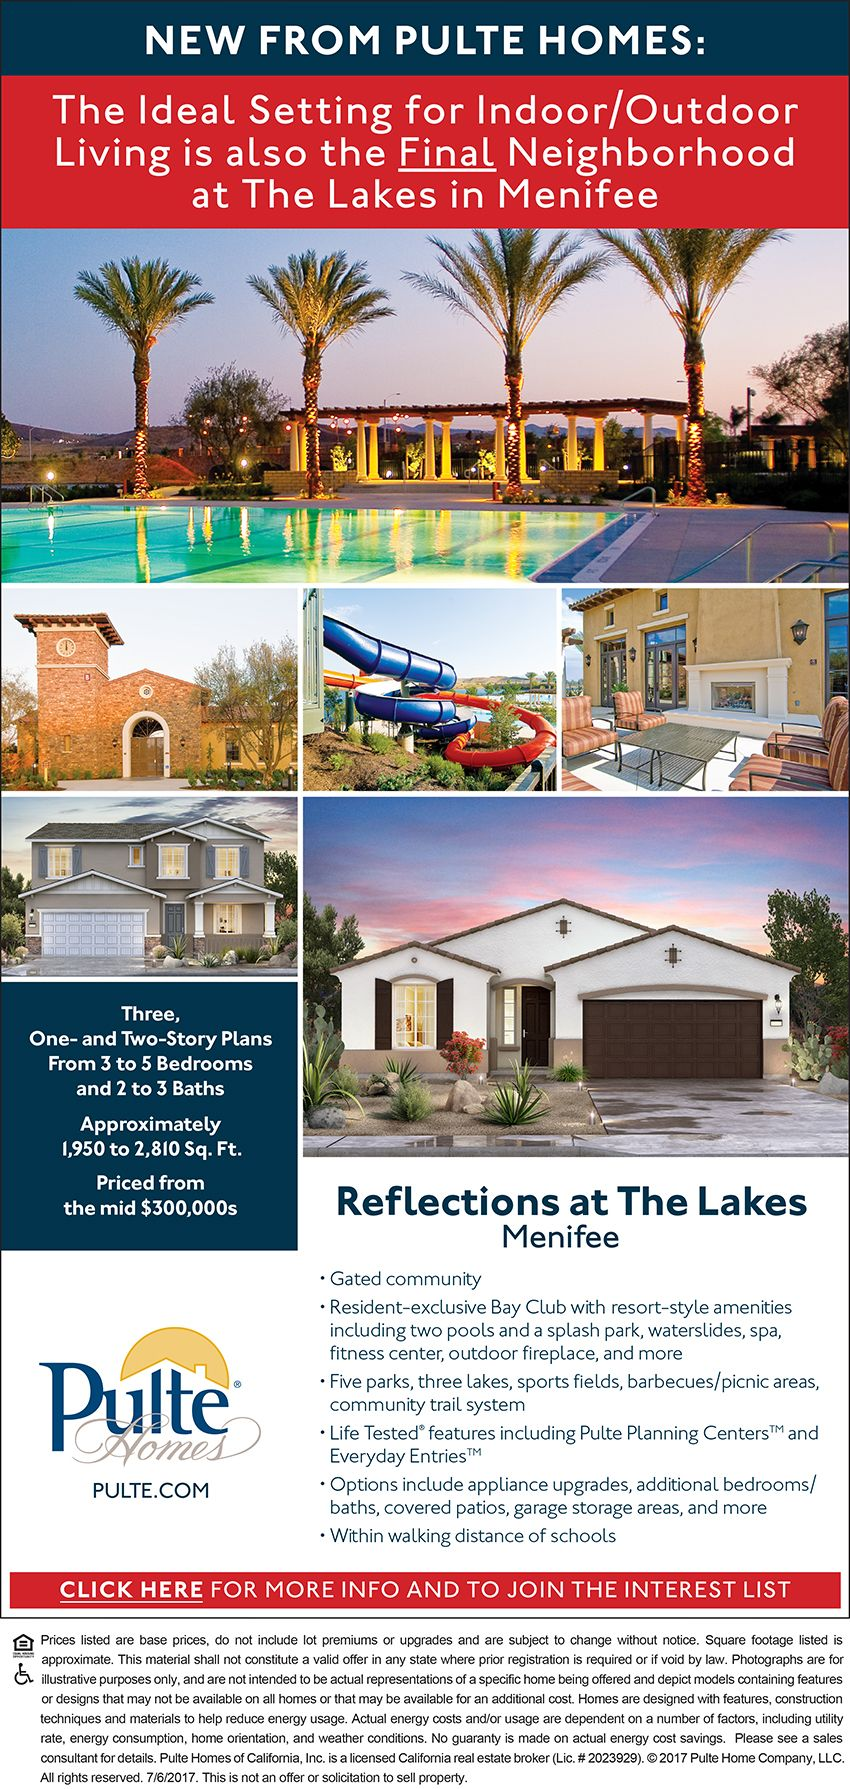 New Homes For Sale In Menifee California Coming Soon Pulte Reflections At The Lakes Menifee Resident Exclusive Bay Clu New Homes For Sale Splash Park Pulte